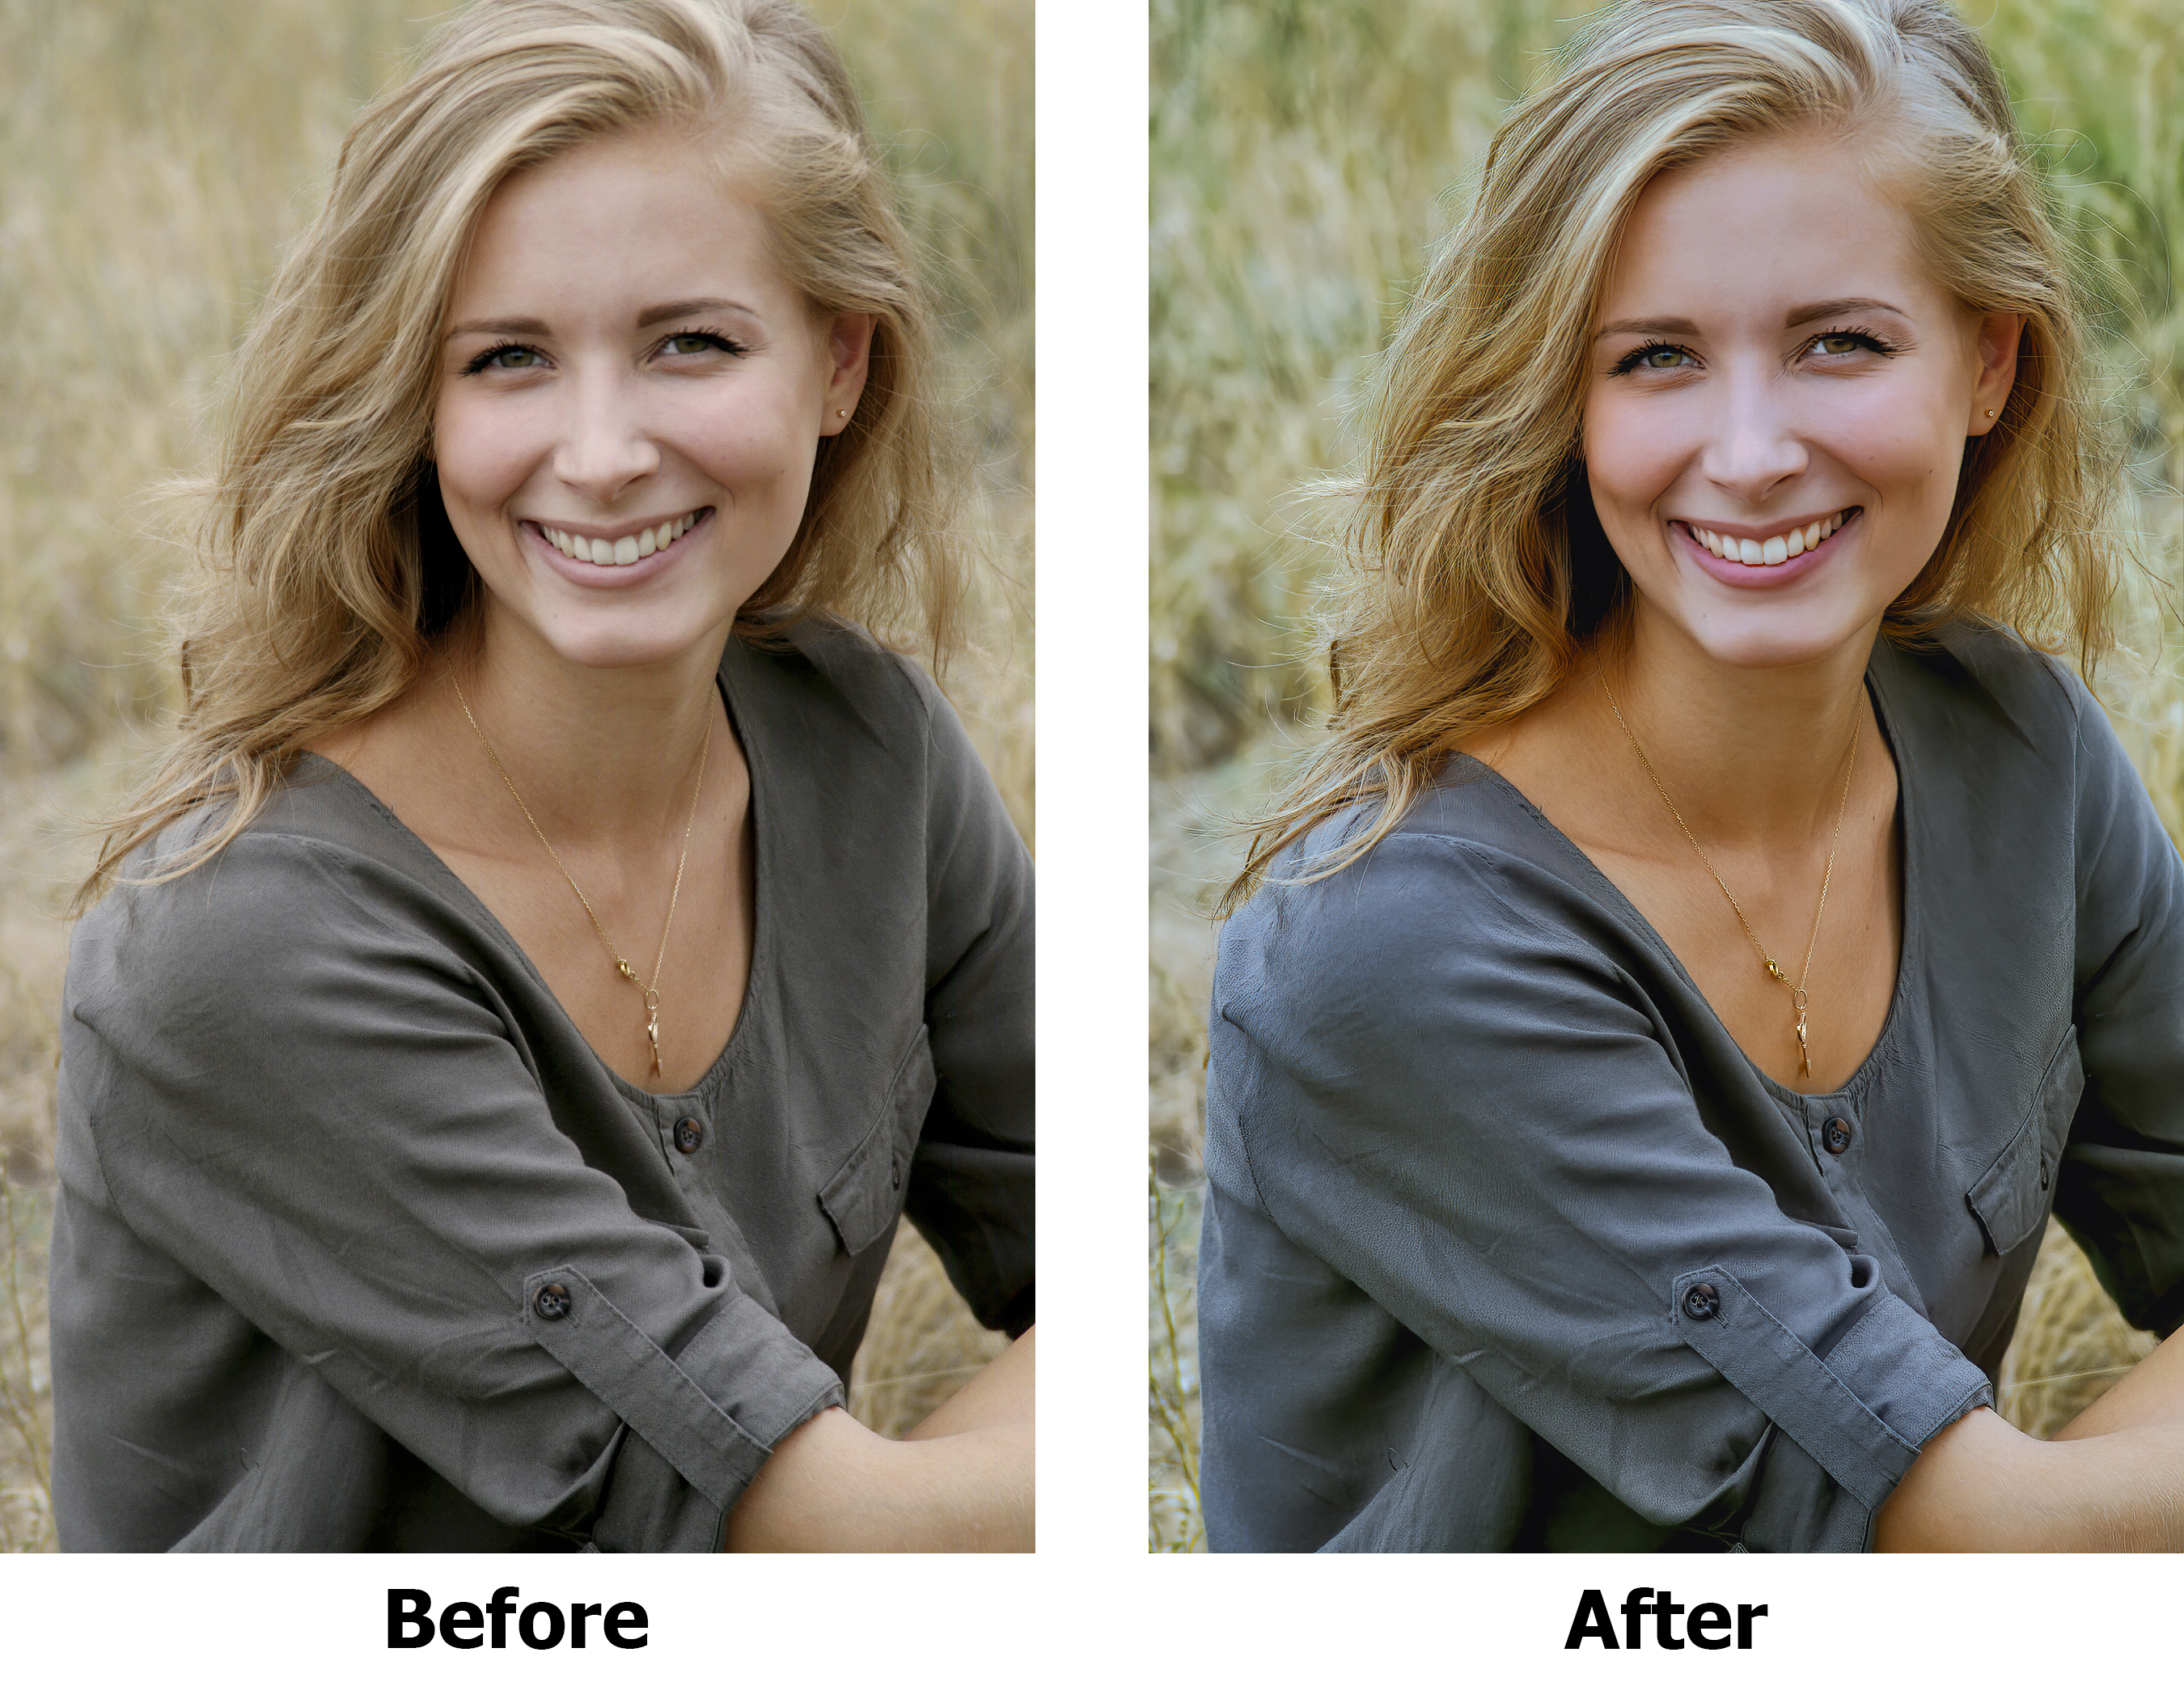 girl-before-after.jpg